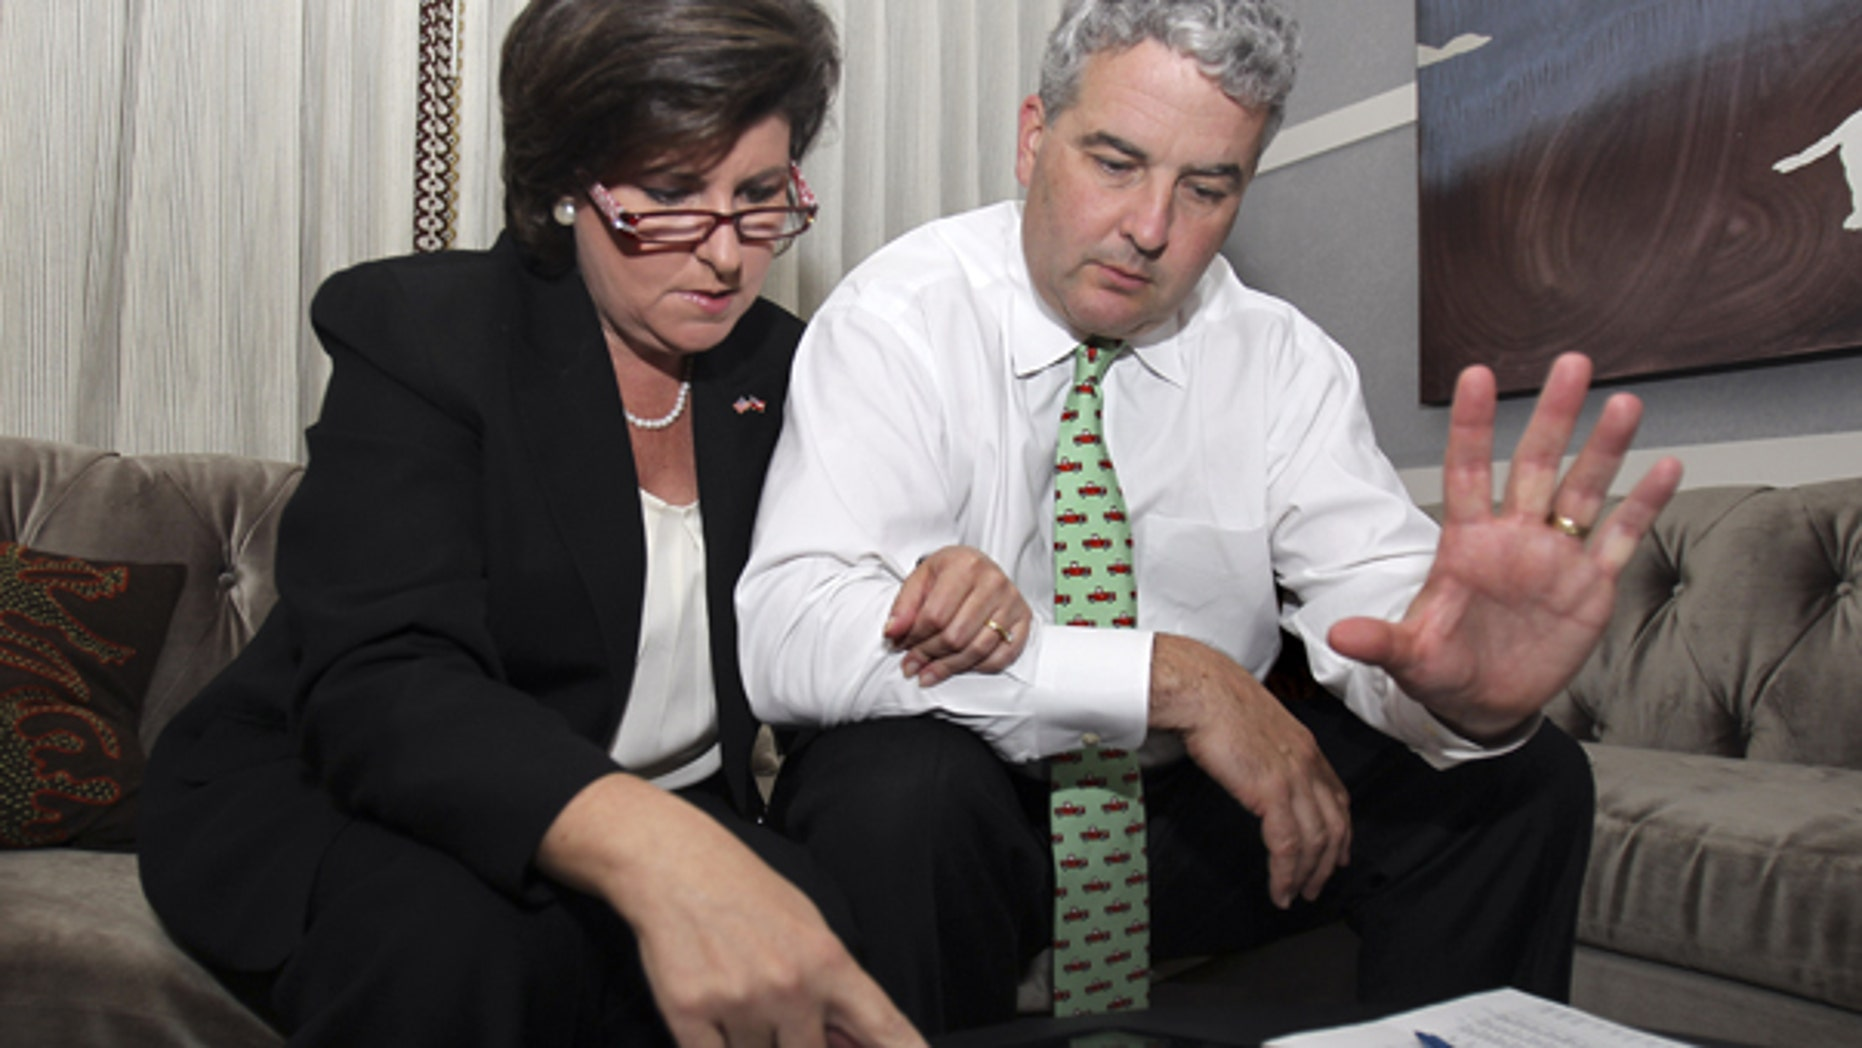 Aug. 10: Georgia gubernatorial candidate Karen Handel and her husband Steve Handel look over early returns after the polls closed Tuesday night in Atlanta.